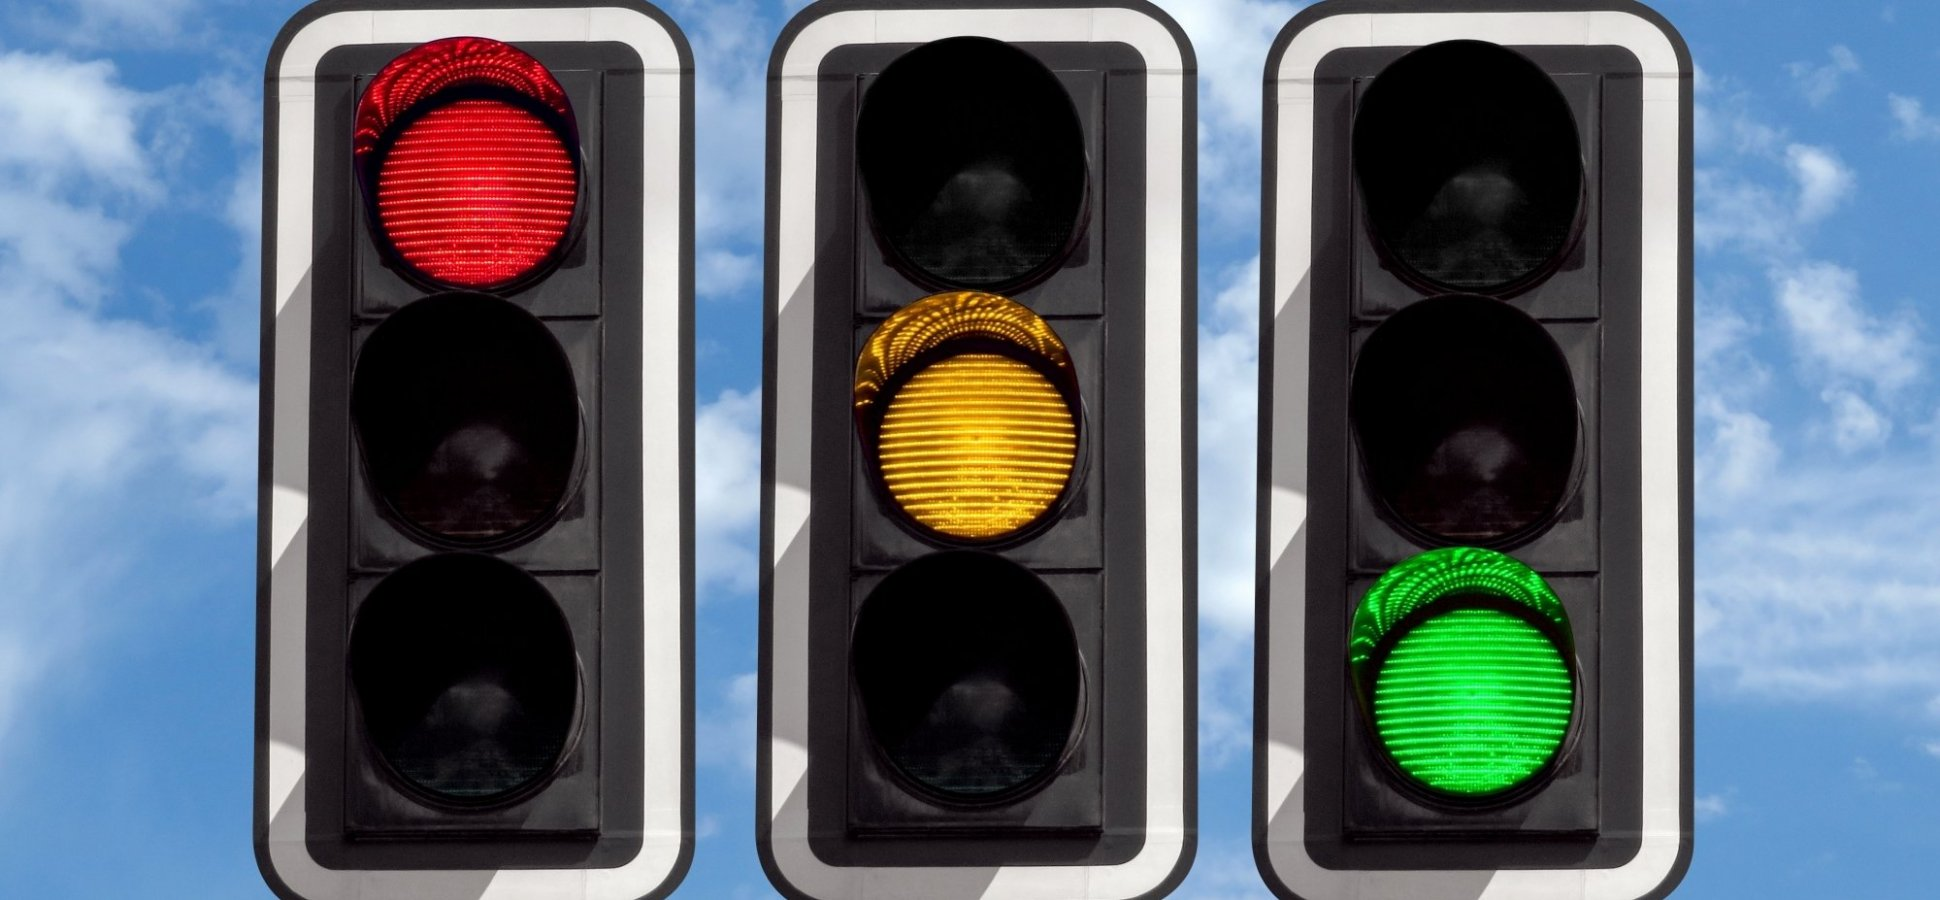 How To Give Feedback Like A Traffic Light